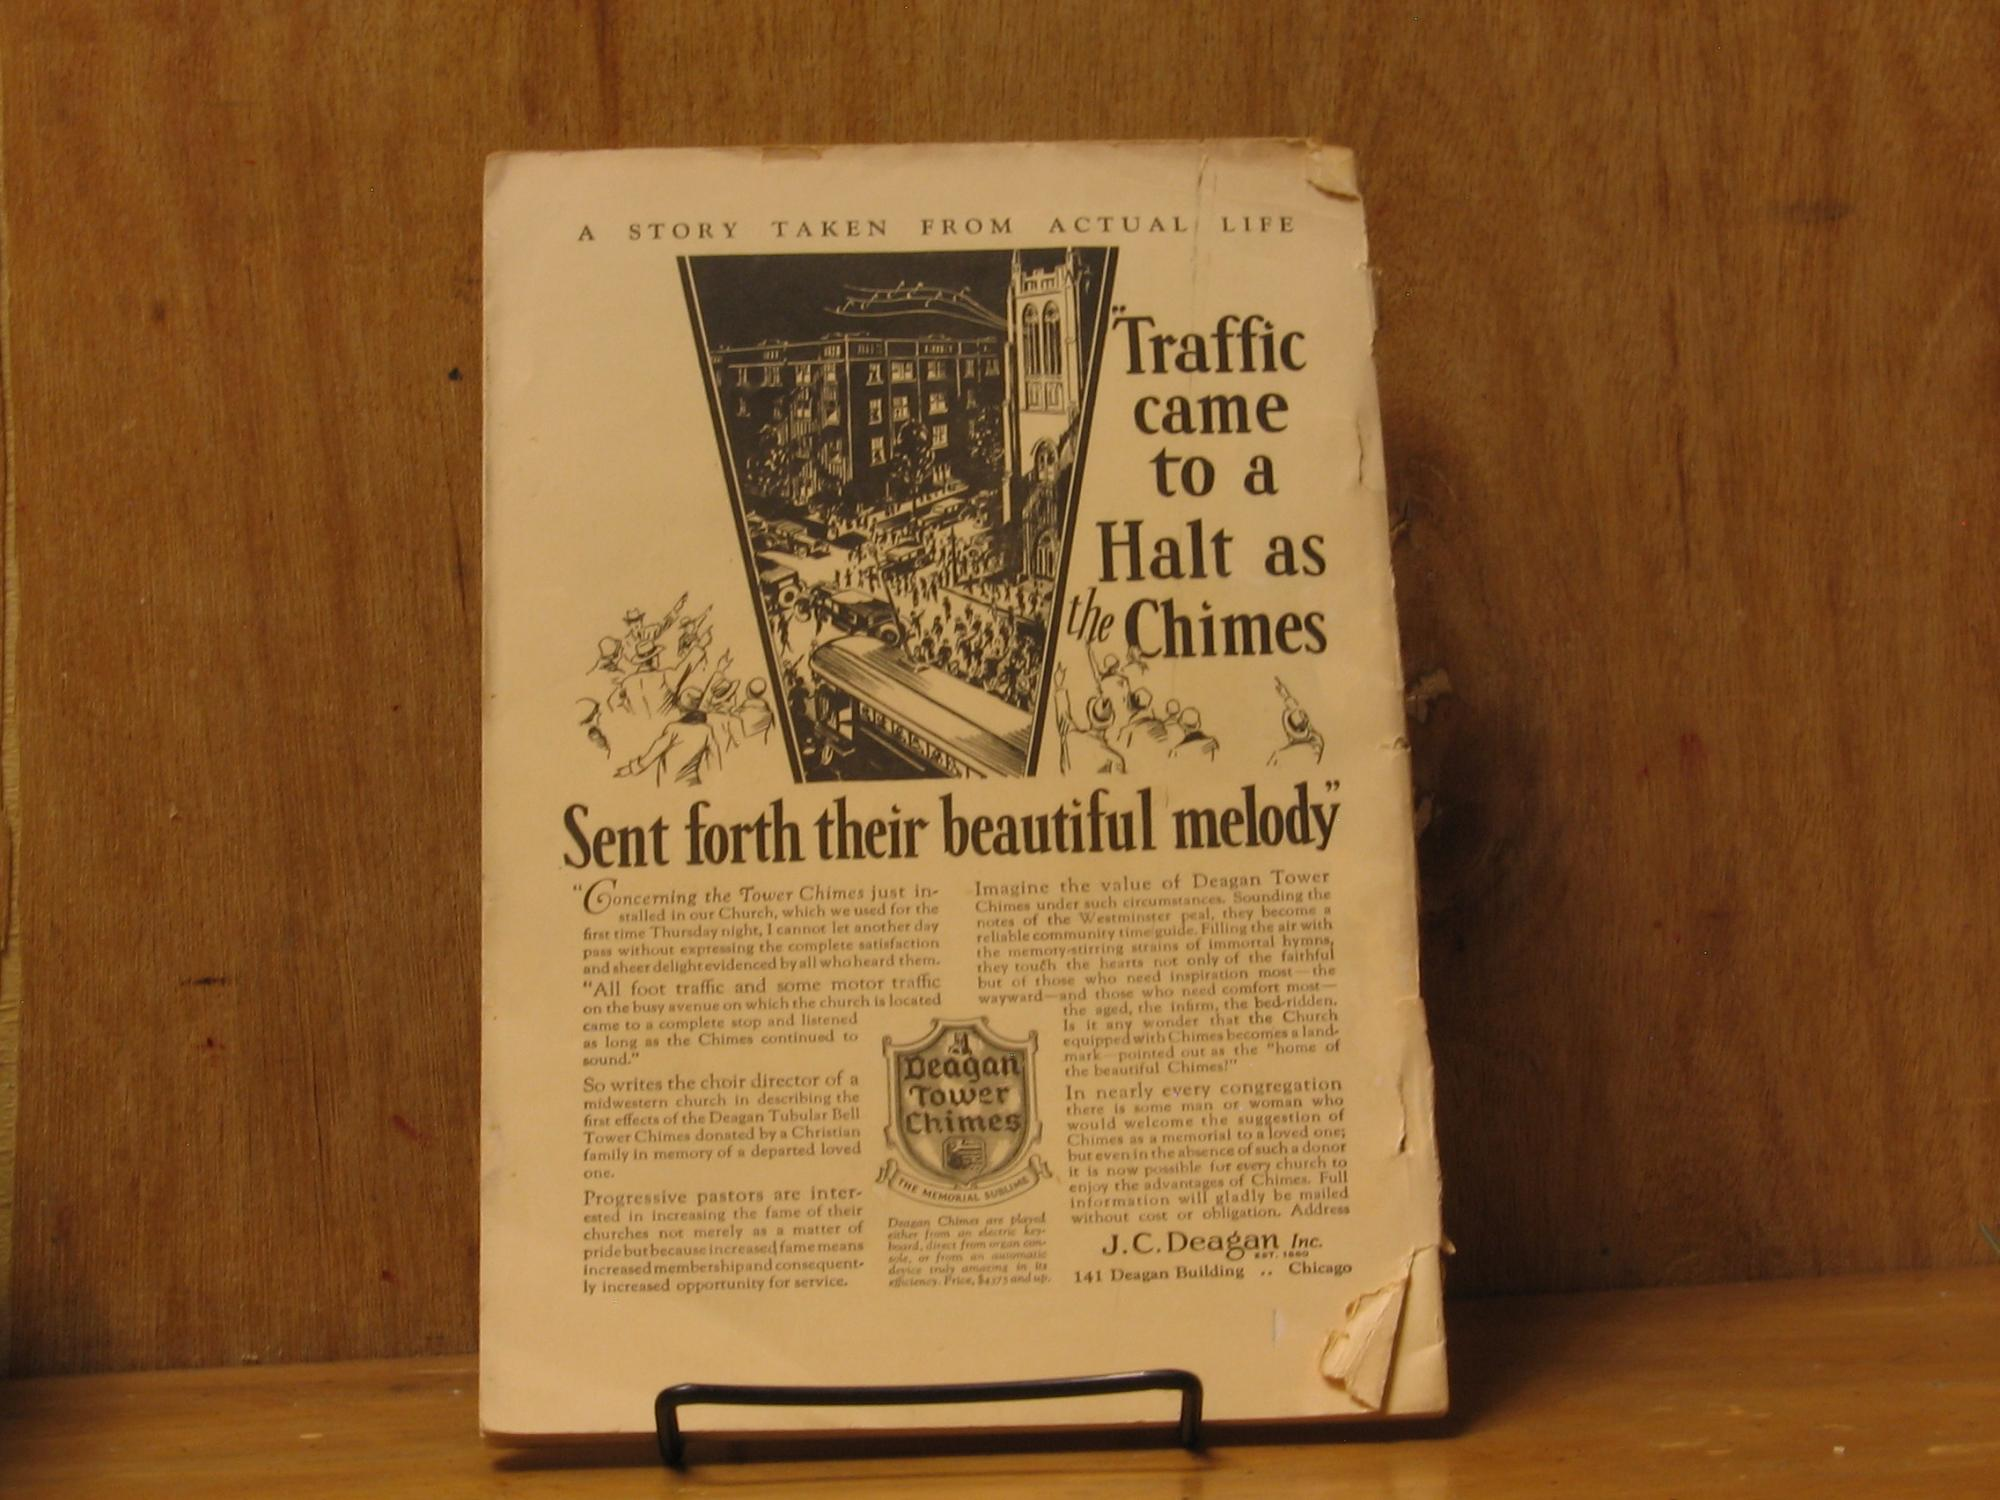 The Expositor, The Minister's Trade Journal,